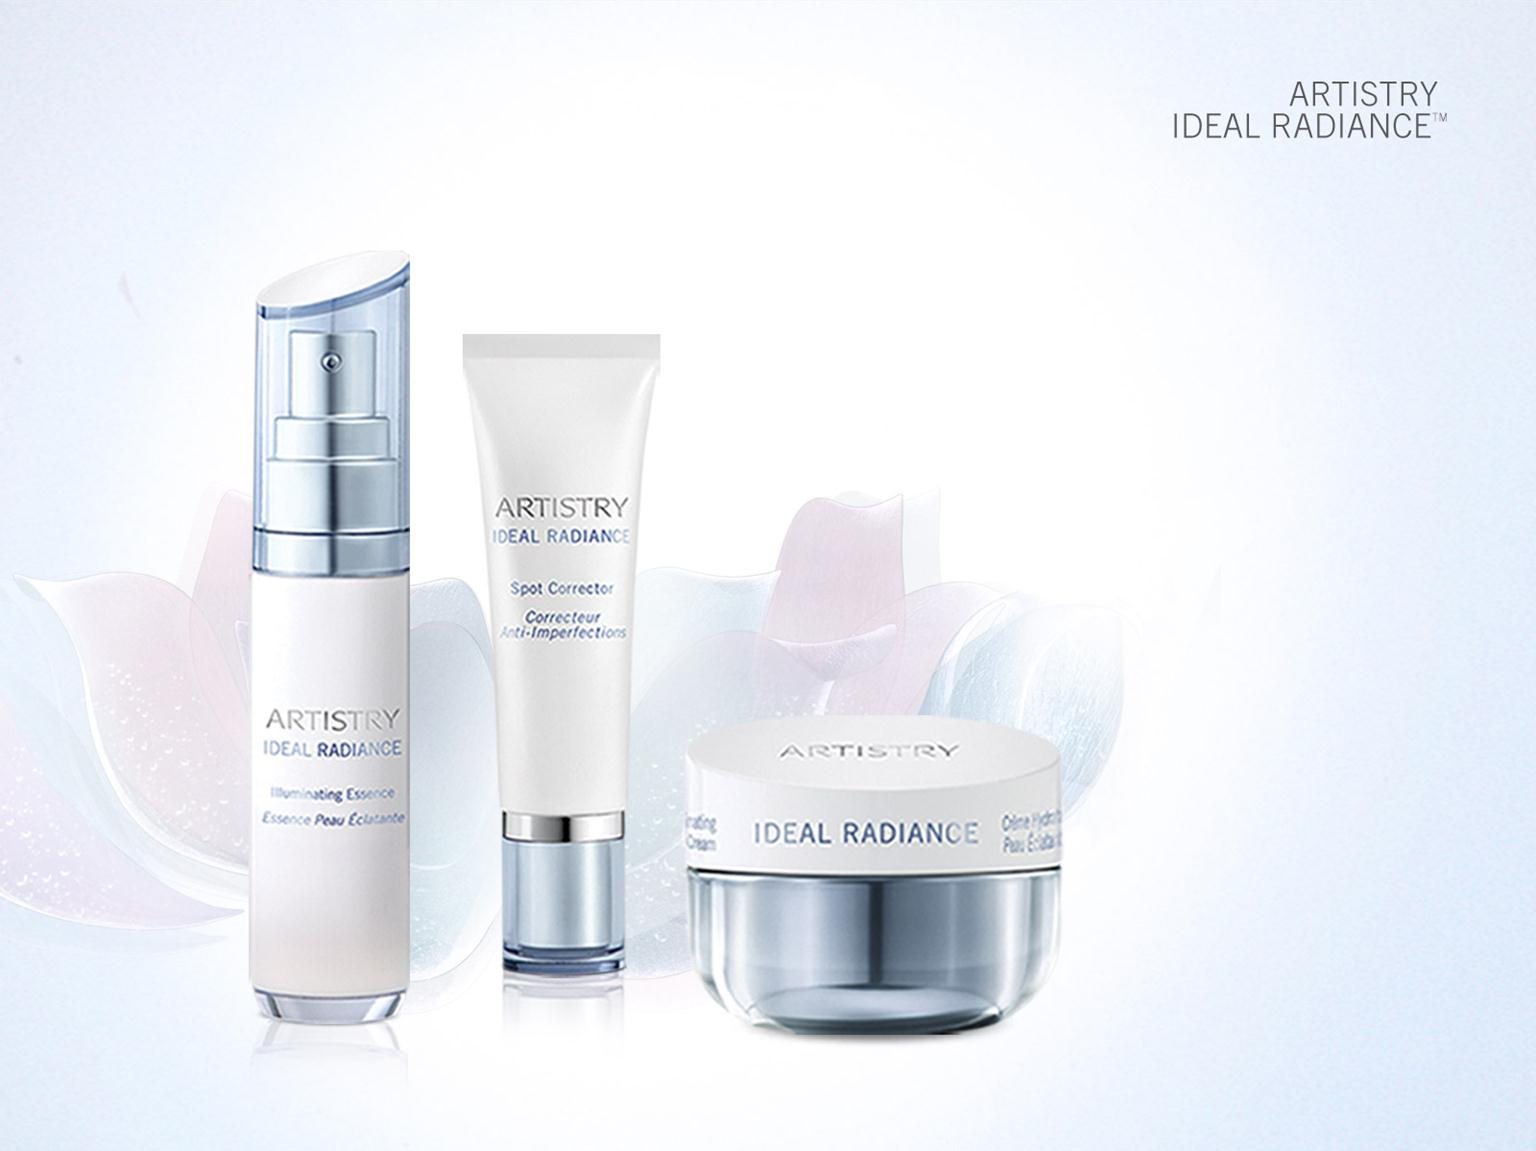 ARTISTRY IDEAL RADIANCE Power System Χρησιμοποιήστε το ARTISTRY IDEAL RADIANCE Power System